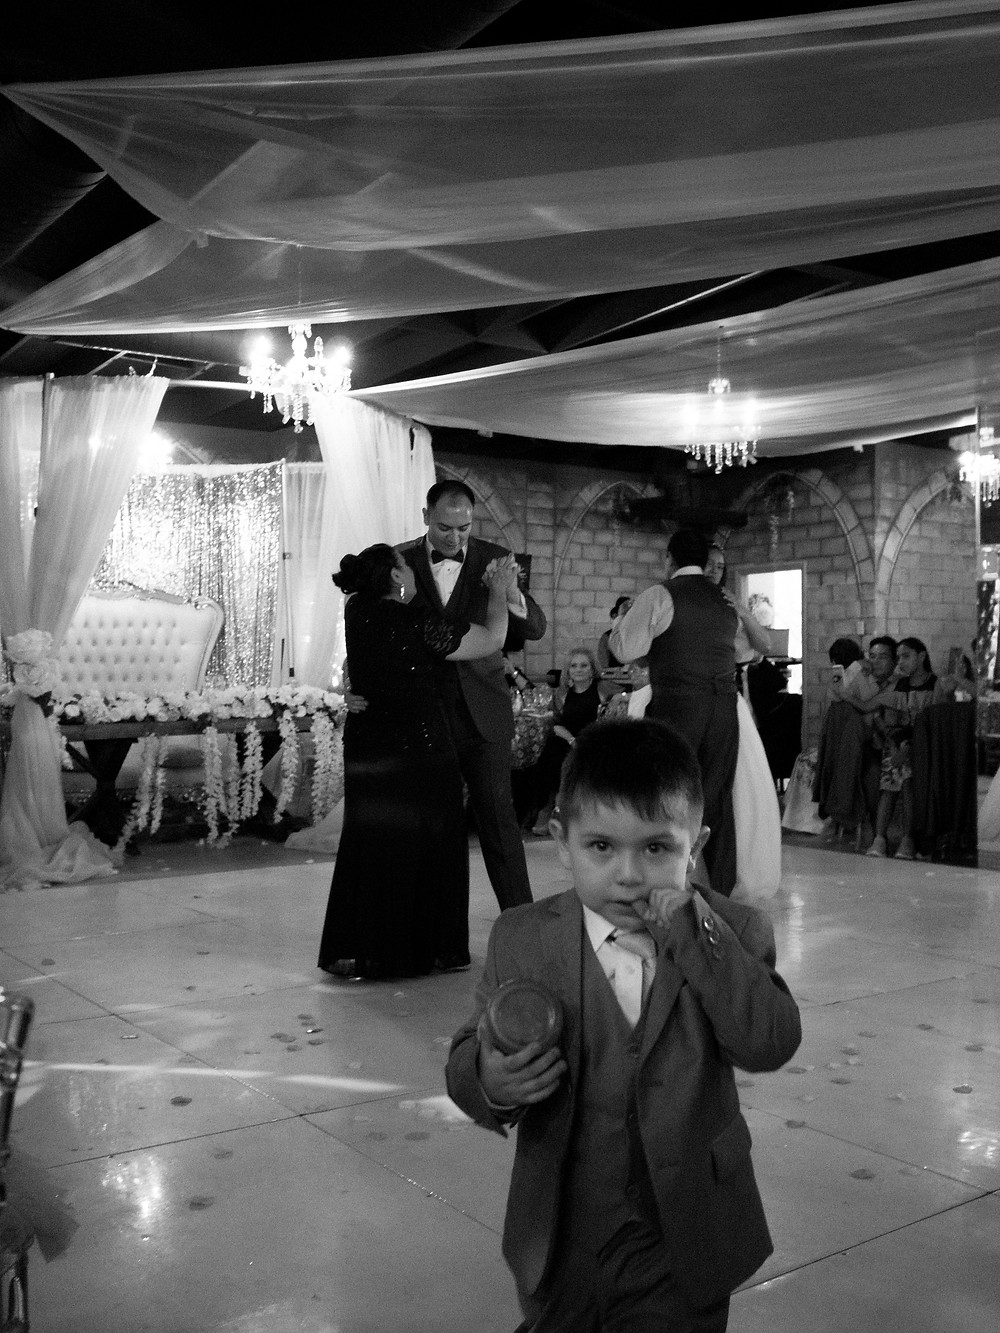 Handsome little gentleman looking at the camera with wedding couples dancing in the background